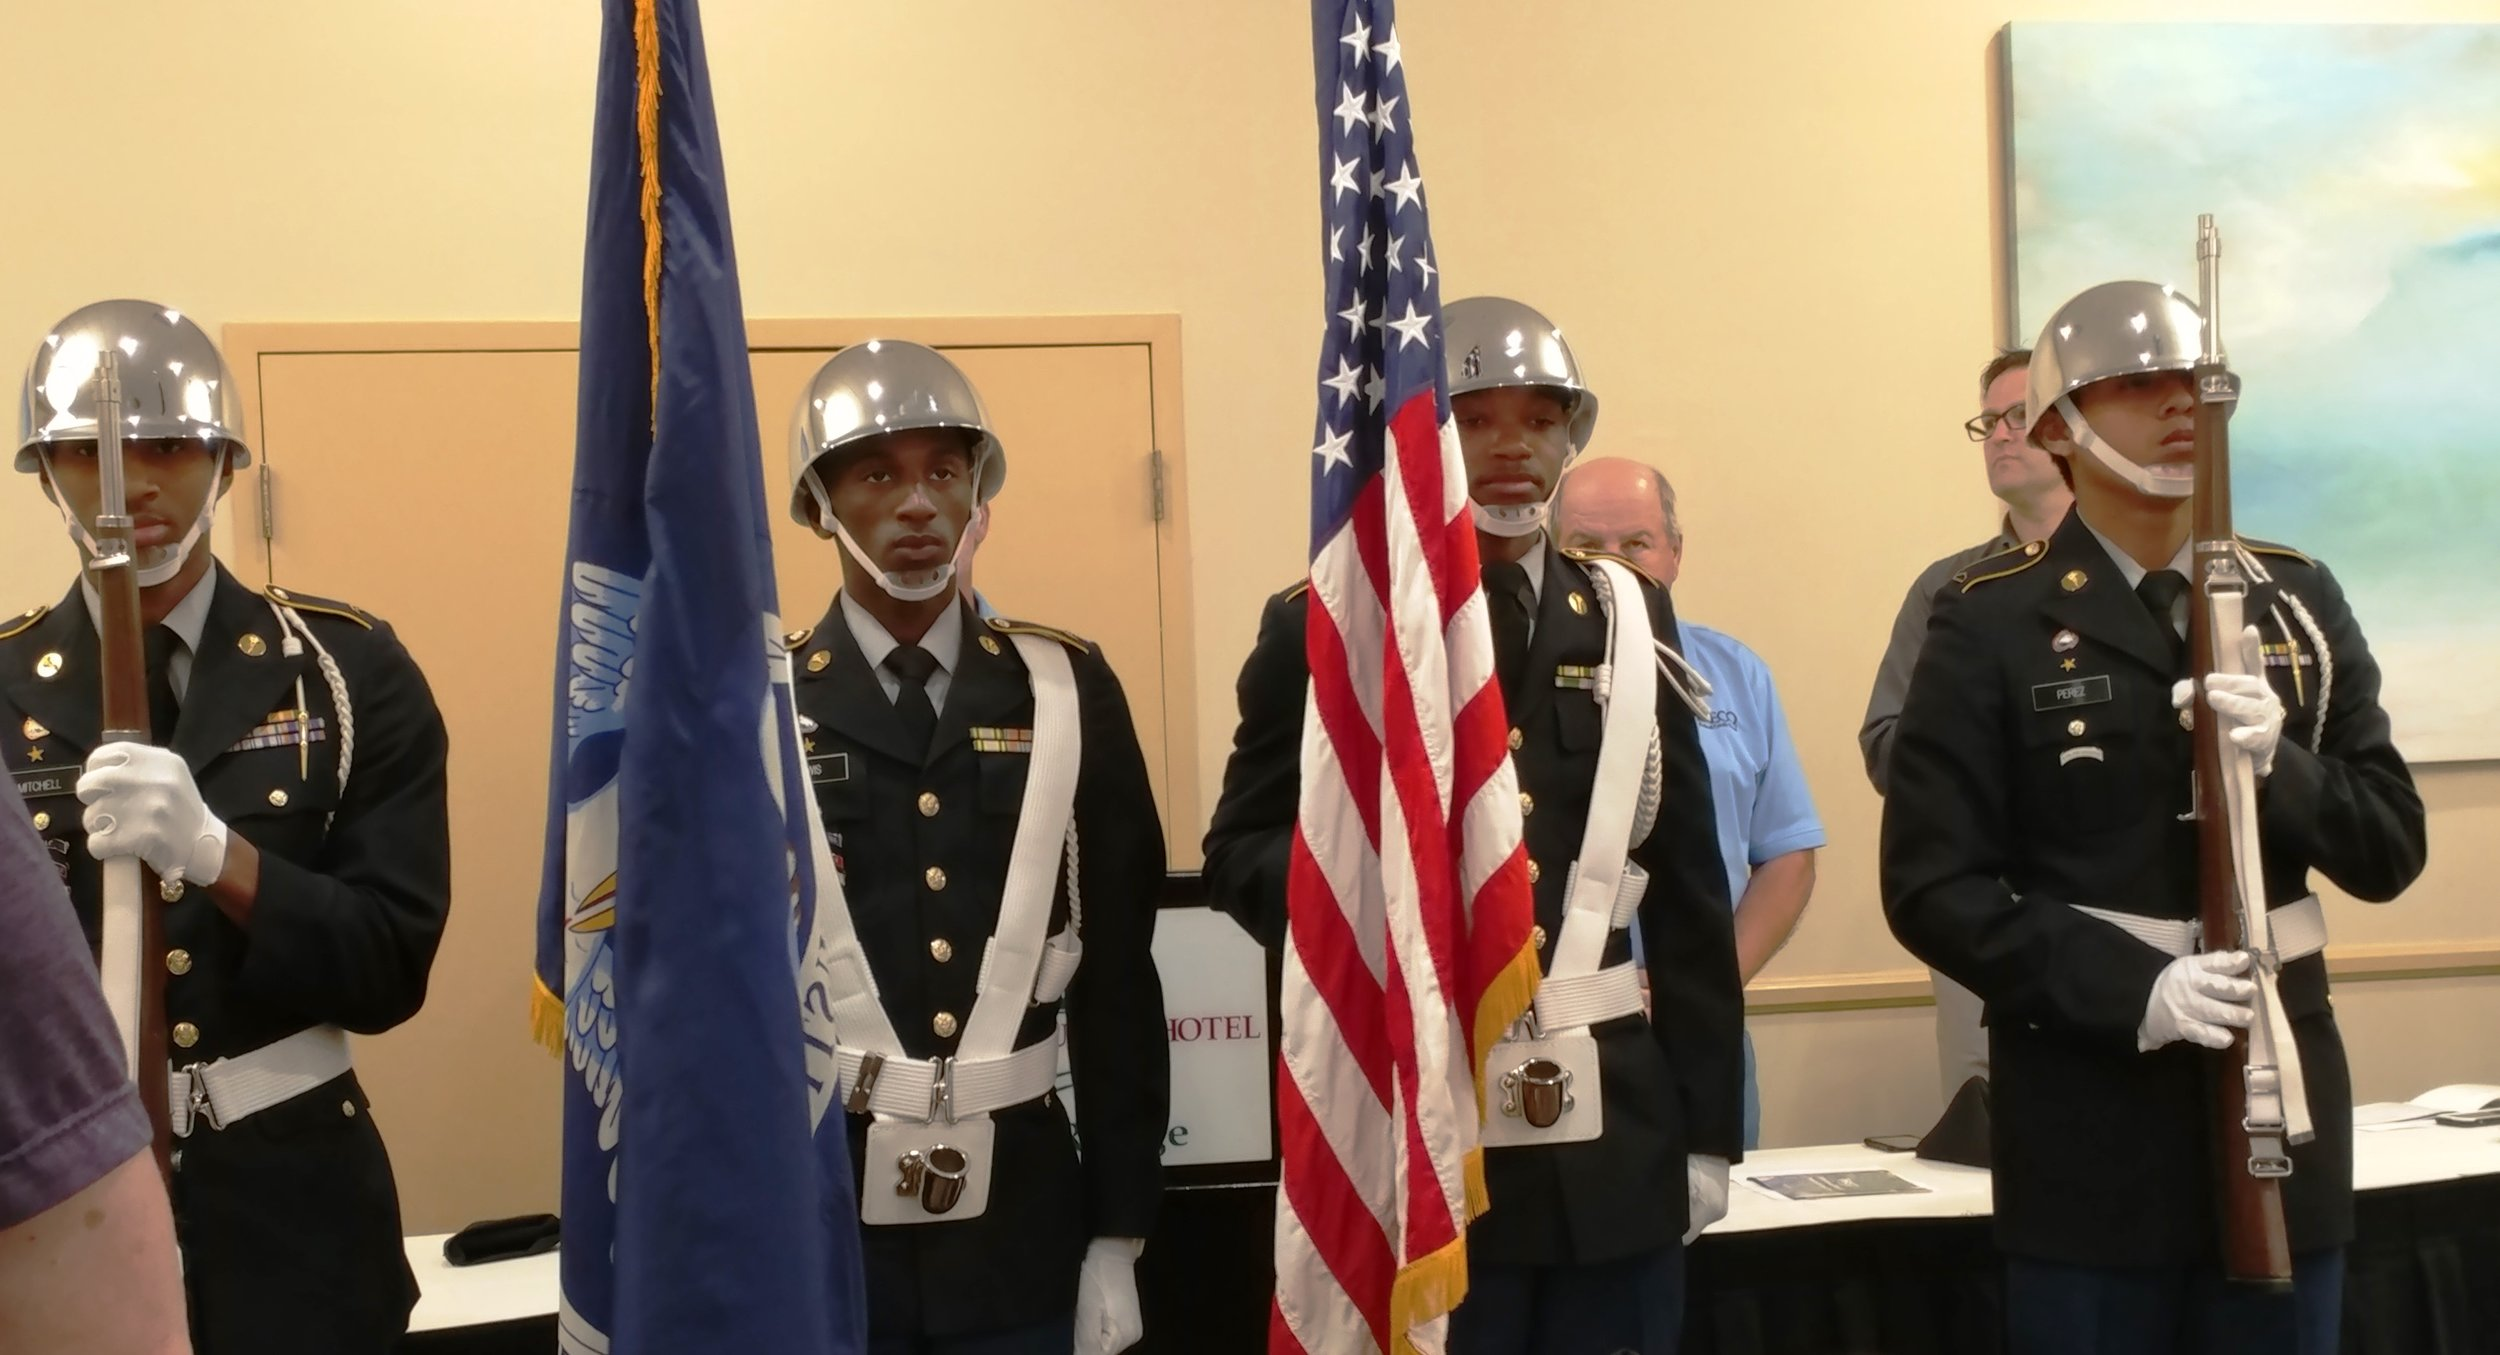 Broadmoor High School JROTC cadets present the colors at the BRECO FCU Annual Meeting